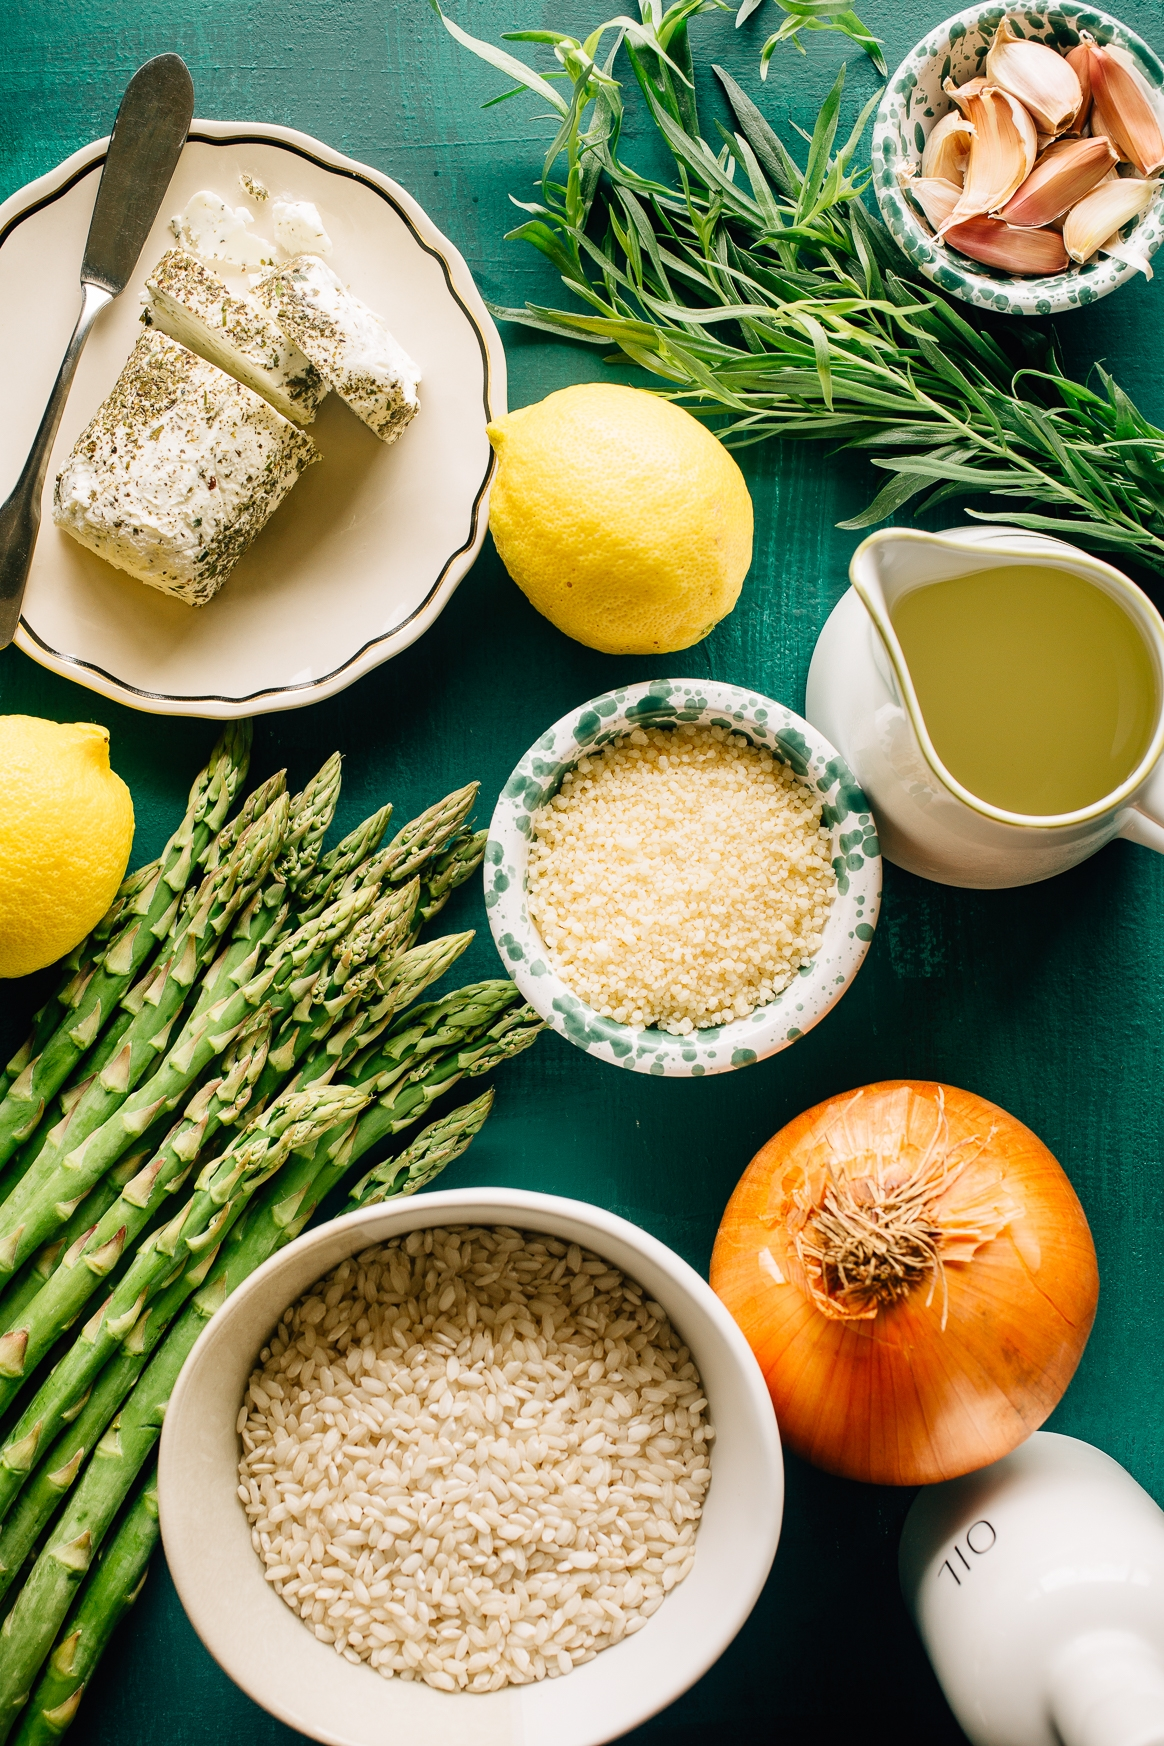 Asparagus Risotto Ingredients